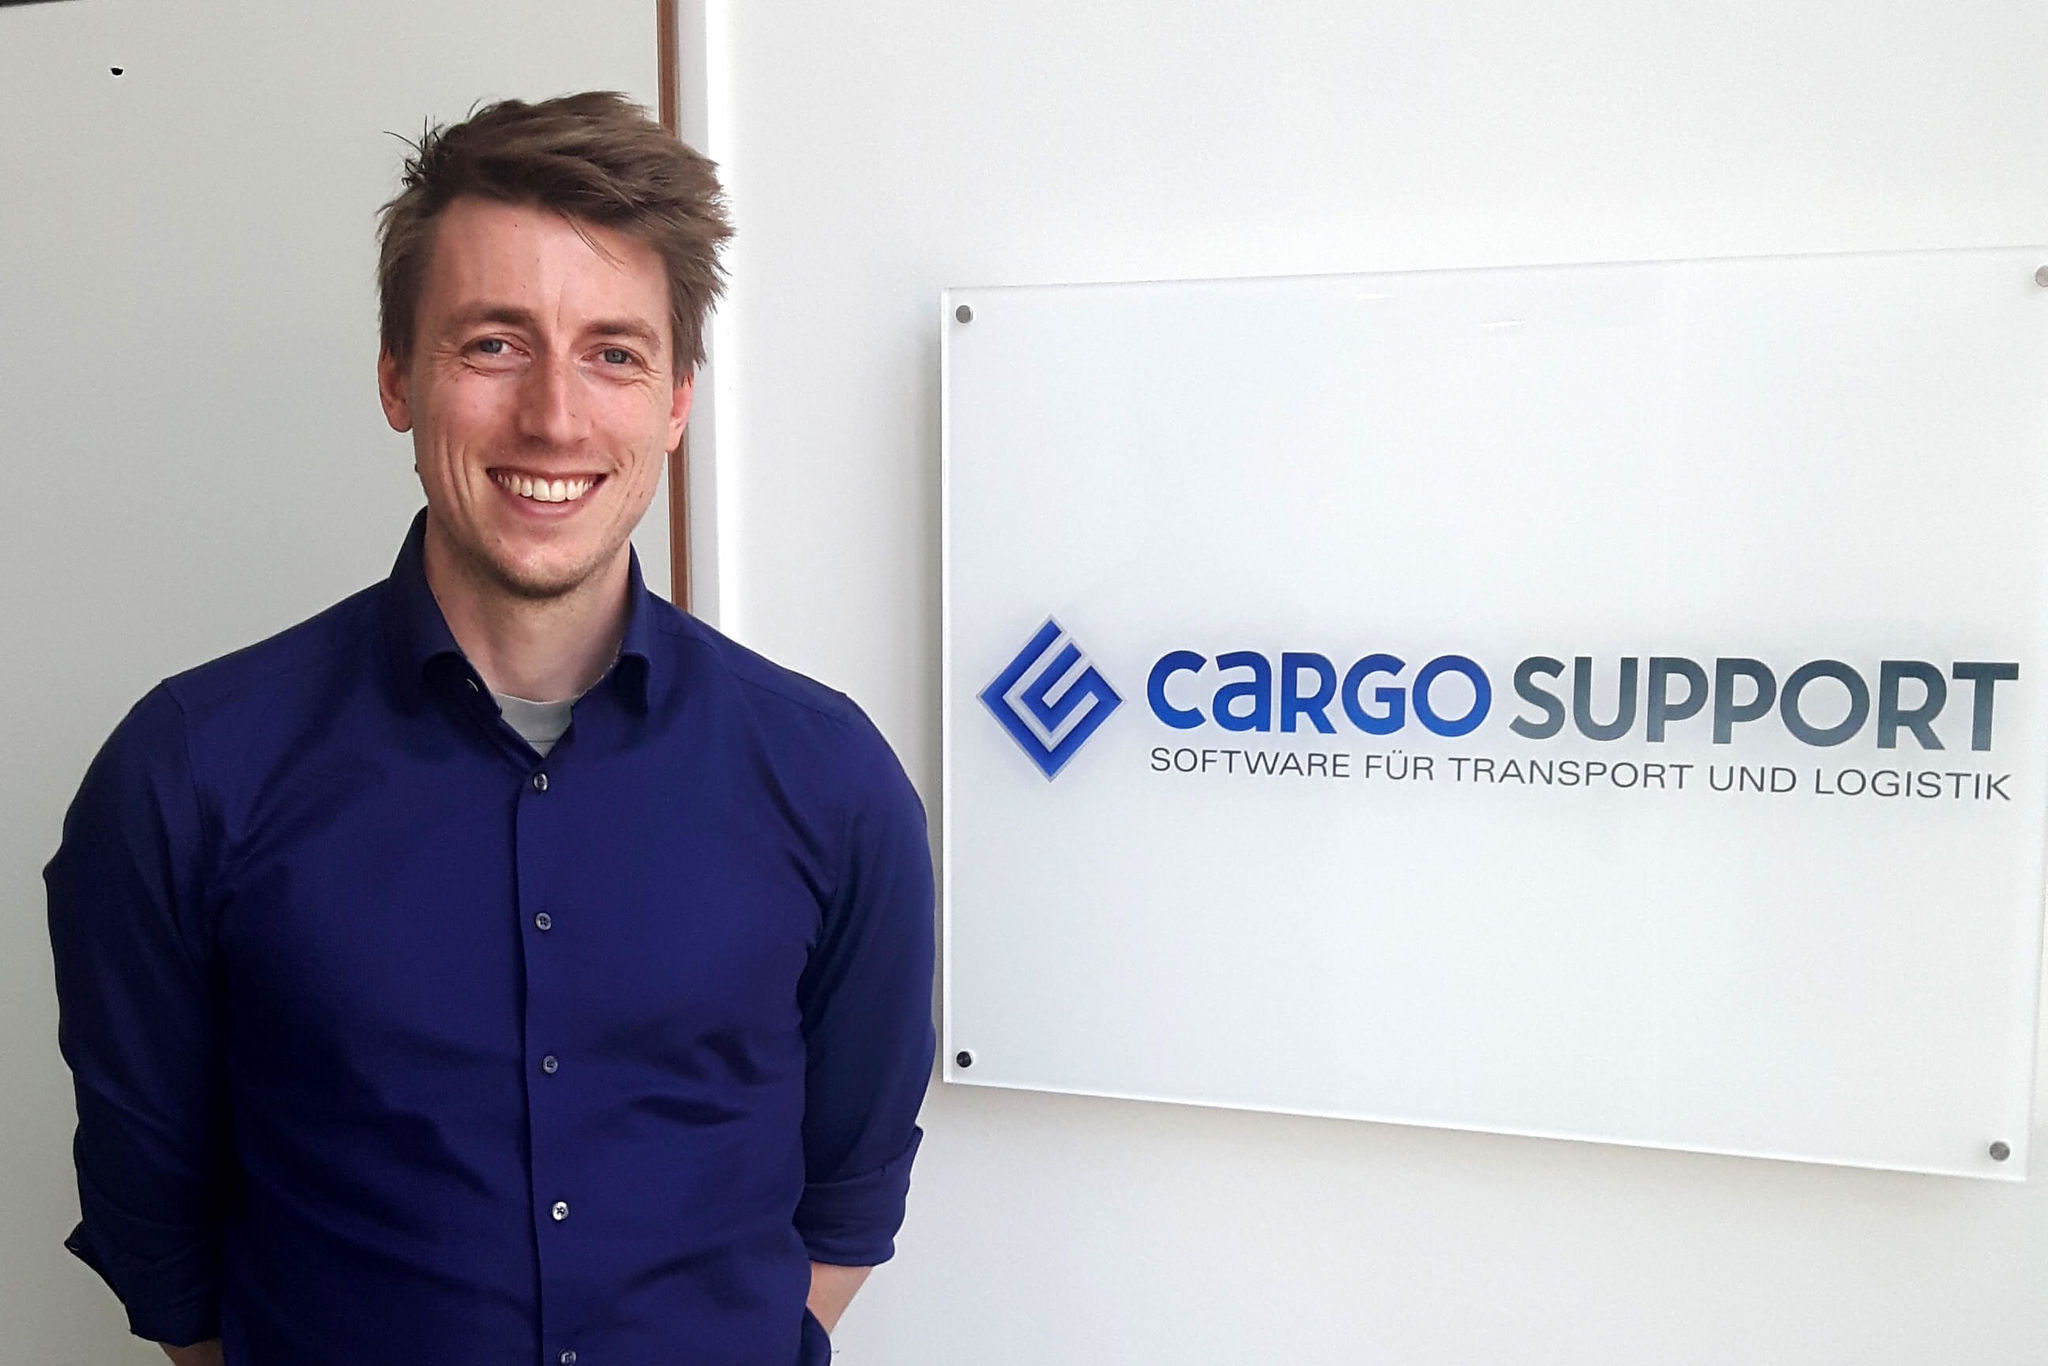 cargo support in Hamburg